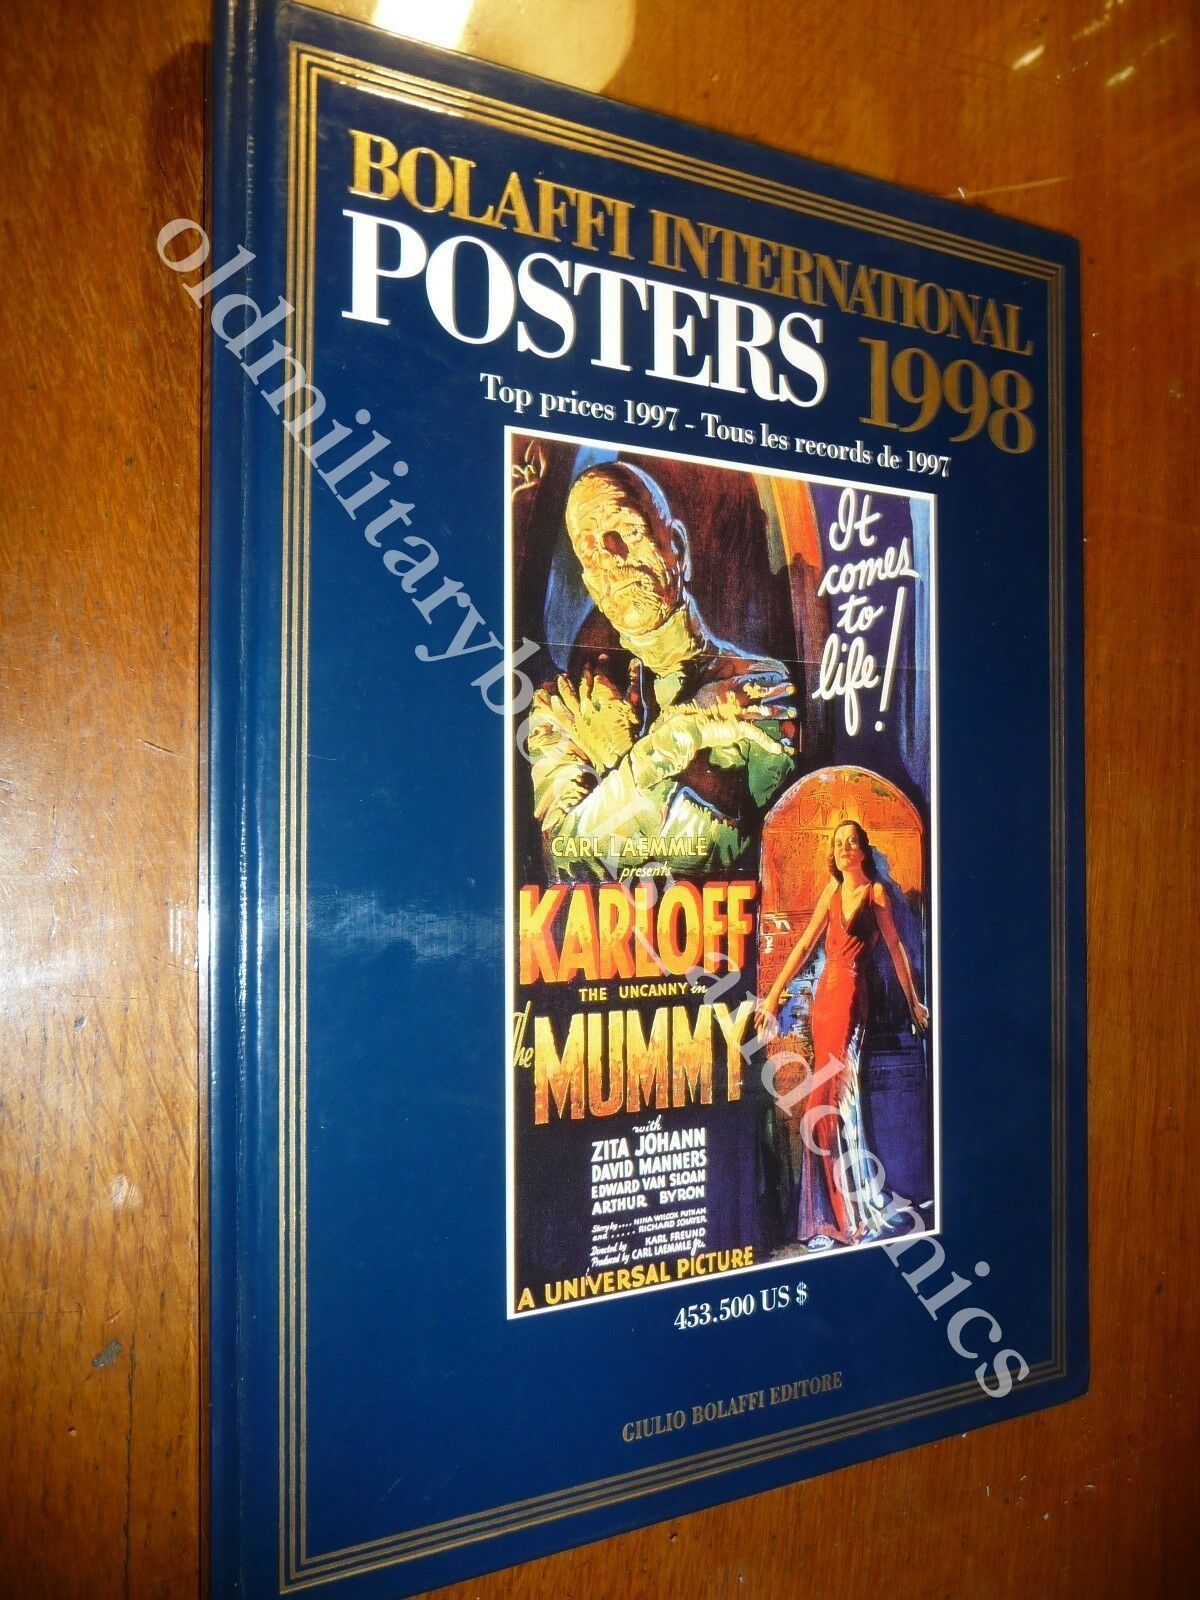 BOLAFFI INTERNATIONAL POSTERS 1998 CATALOGO CON IMPORTANTI VALUTAZIONI D'ASTA